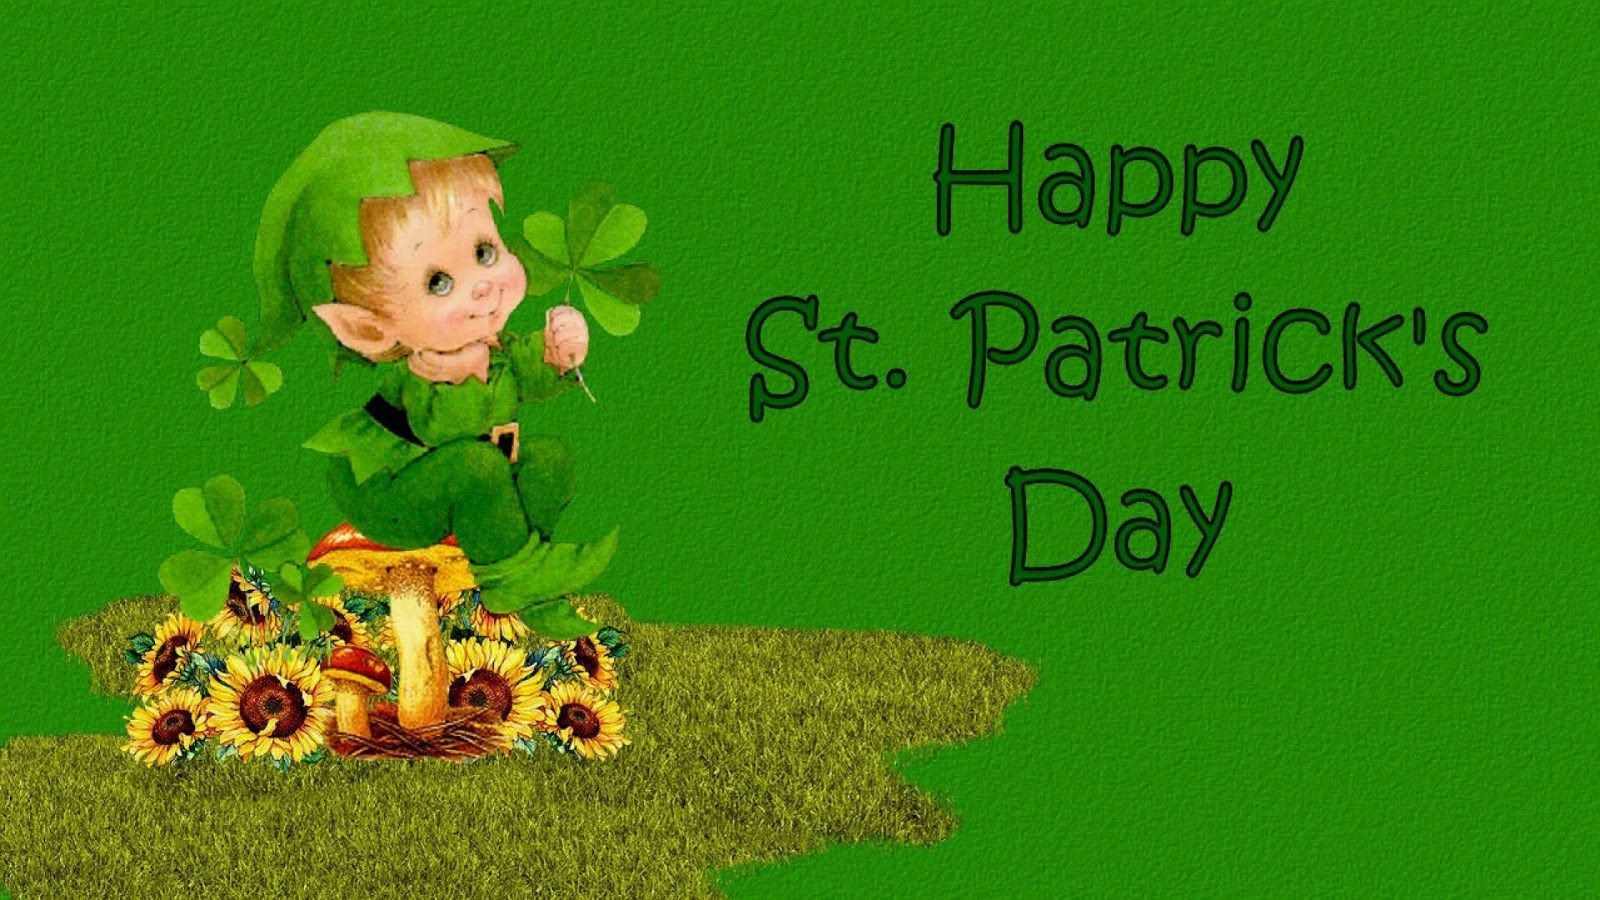 Look - Patricks st. Cute day wallpaper pictures video